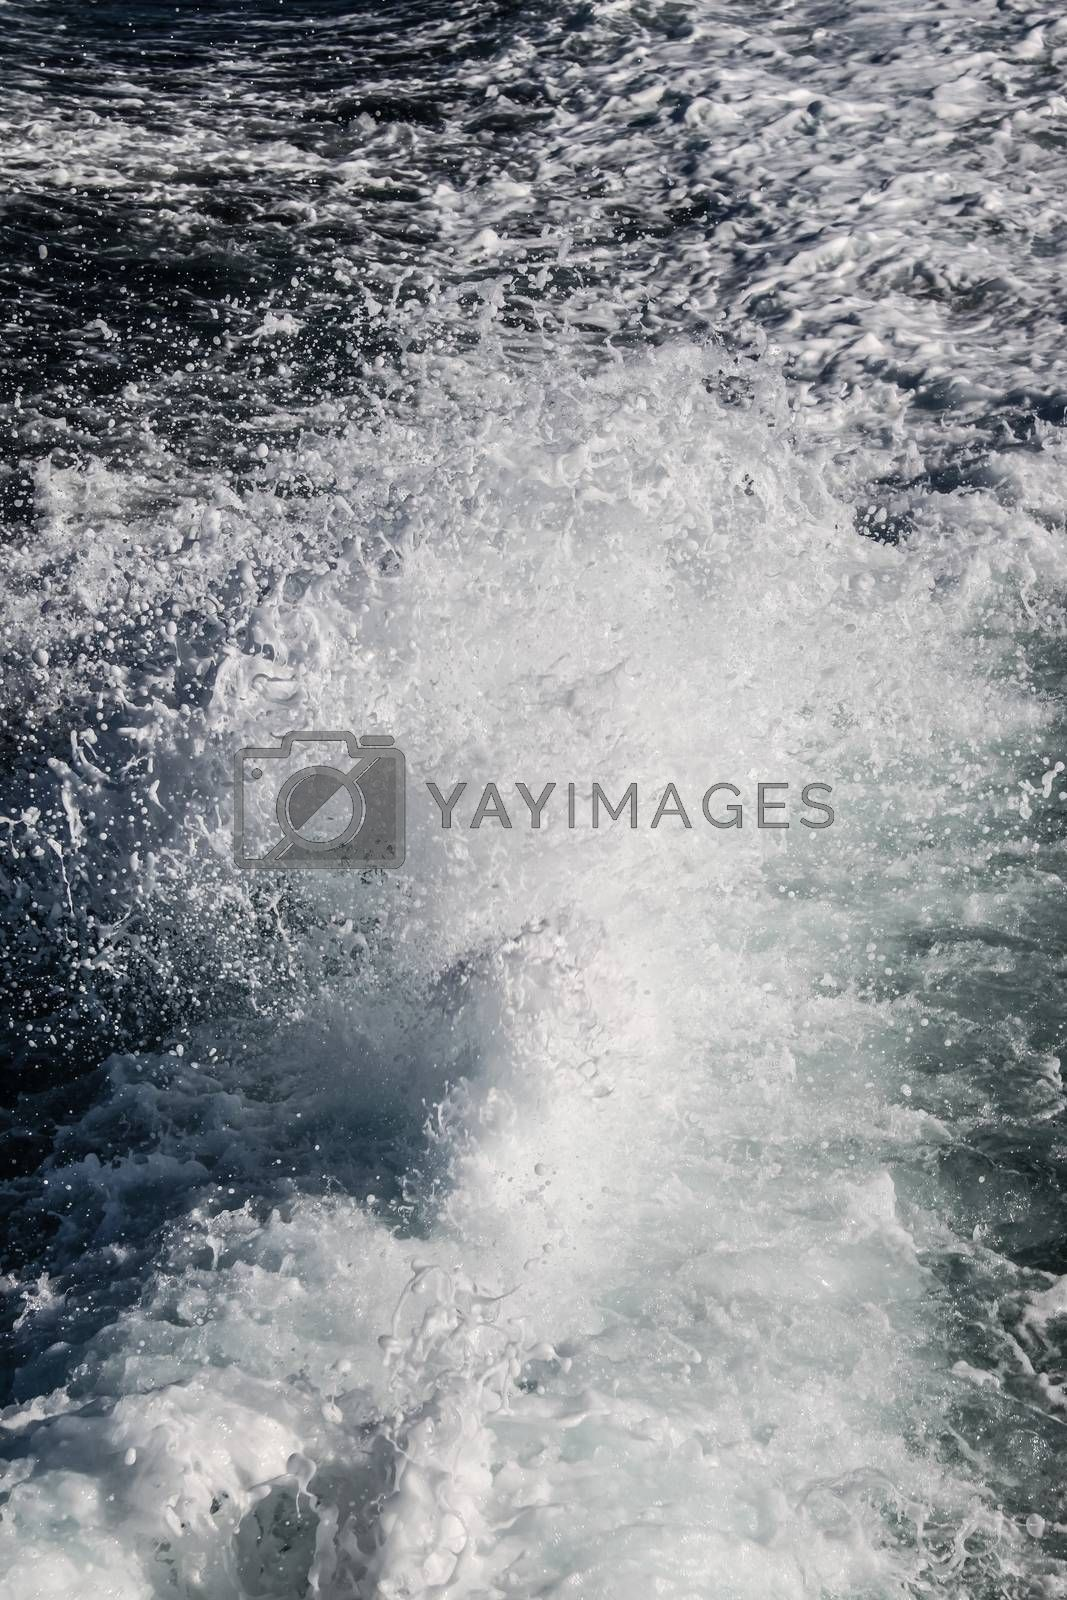 View of the white water from the rear of a ship